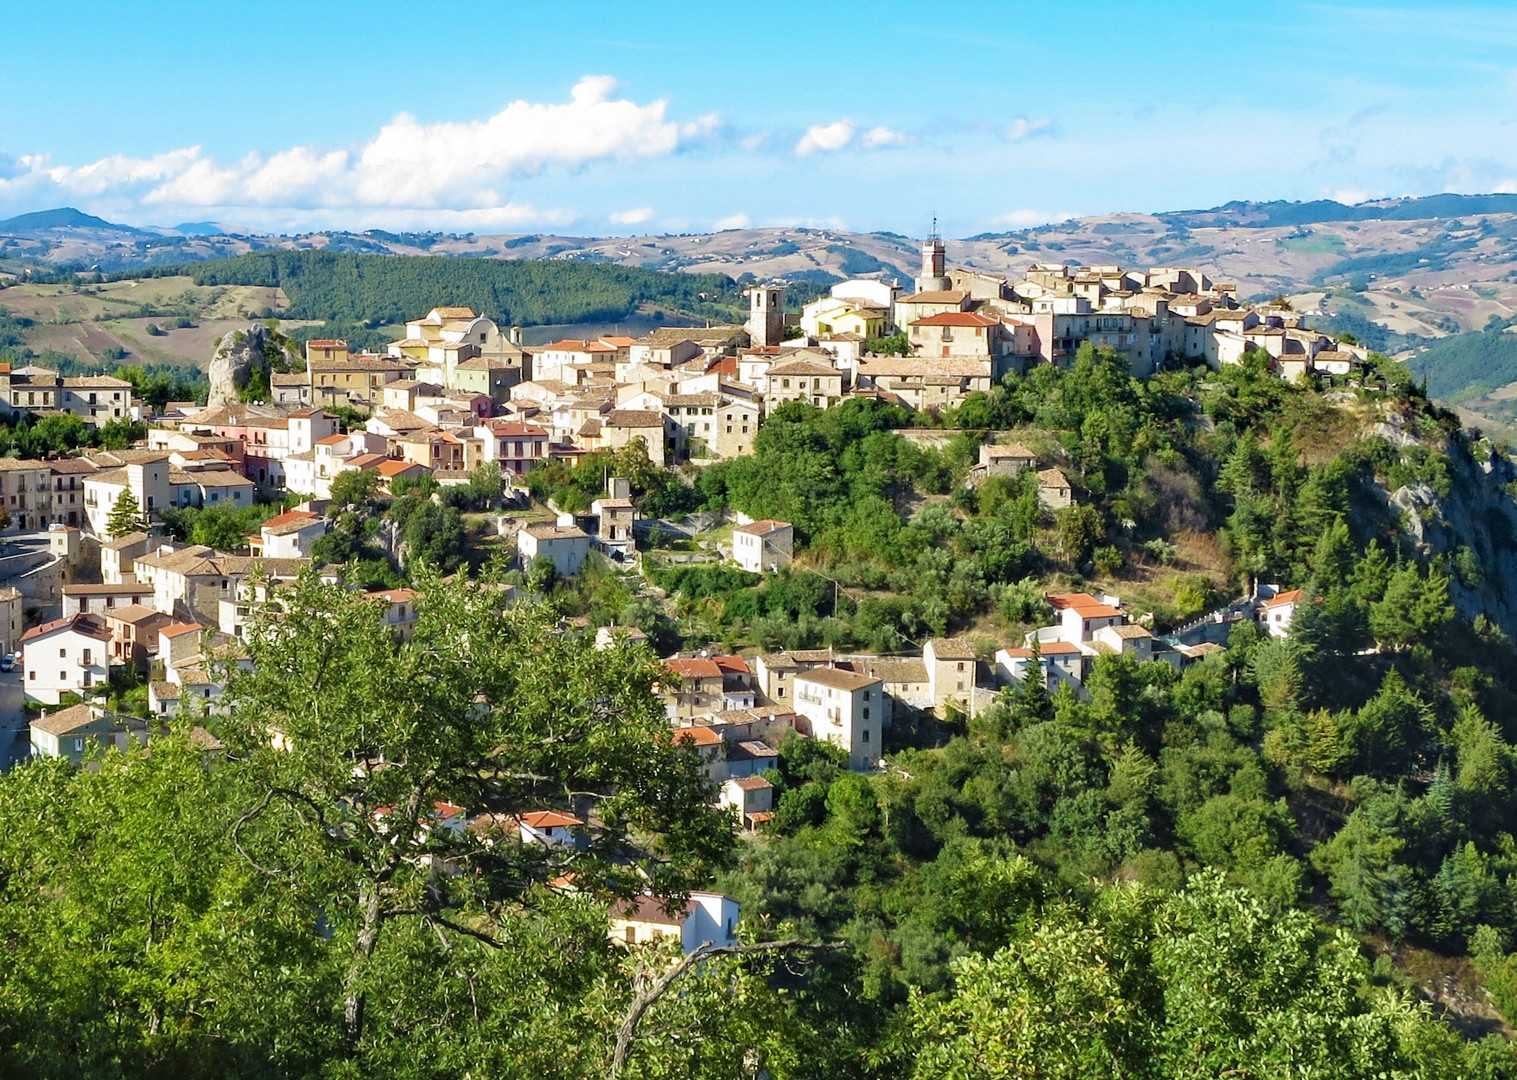 coffee-stop-village-north-to-south-cycling-holiday-italy.jpg - Italy - Grand Traverse - North to South - Guided Road Cycling Holiday (17 days) - Road Cycling